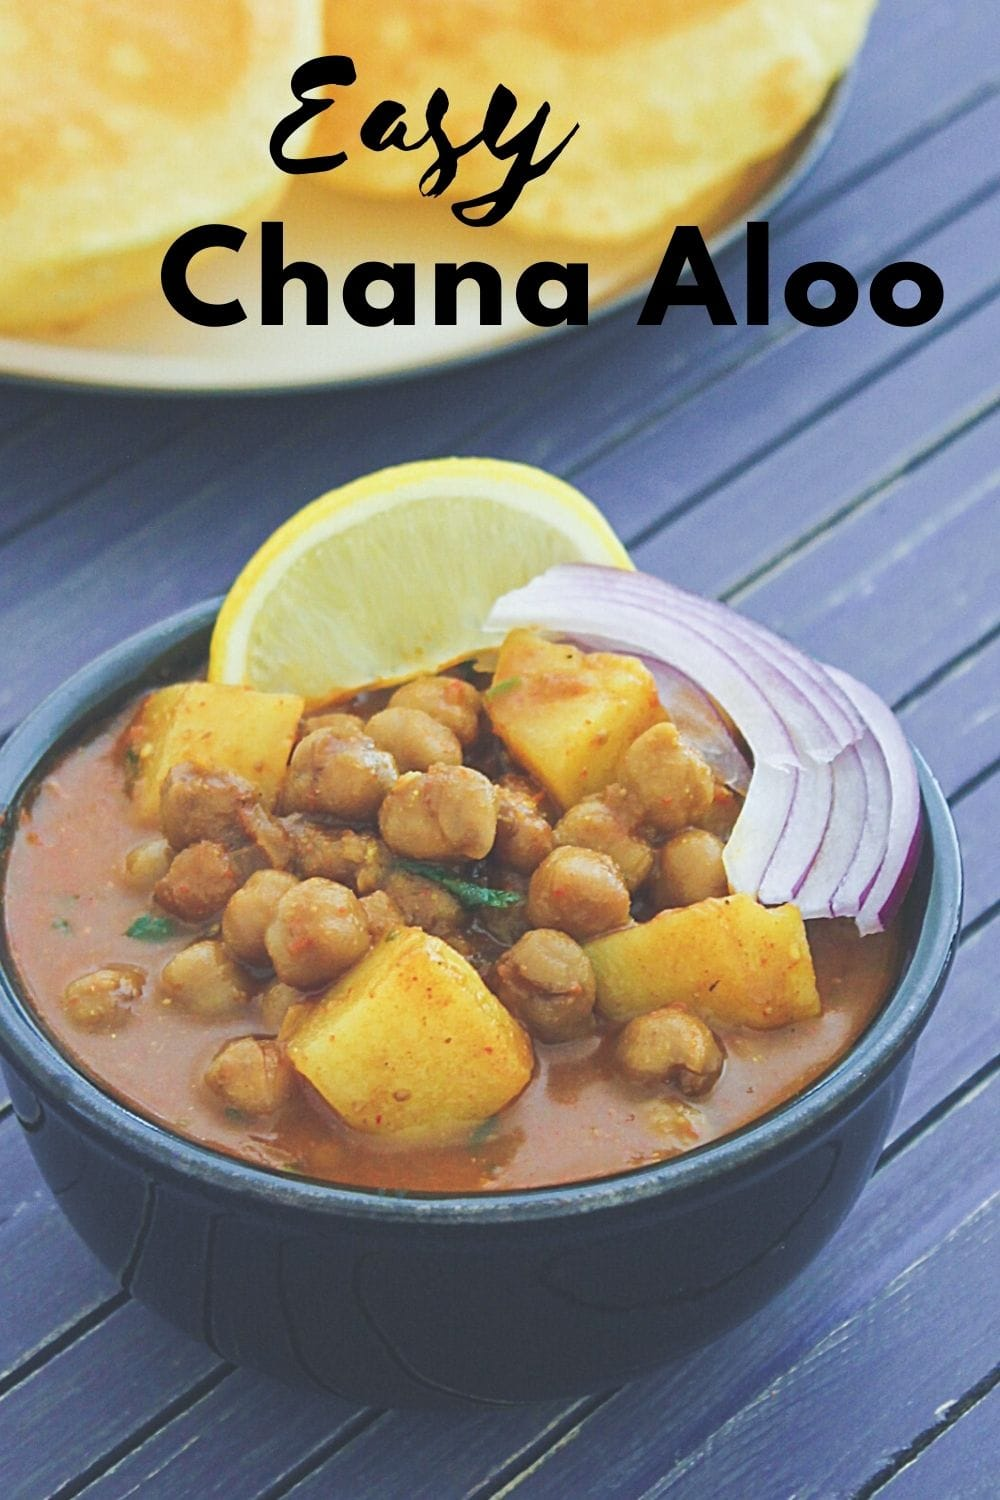 Aloo chana served in a bowl with sliced onion and lemon wedge with text on the image.